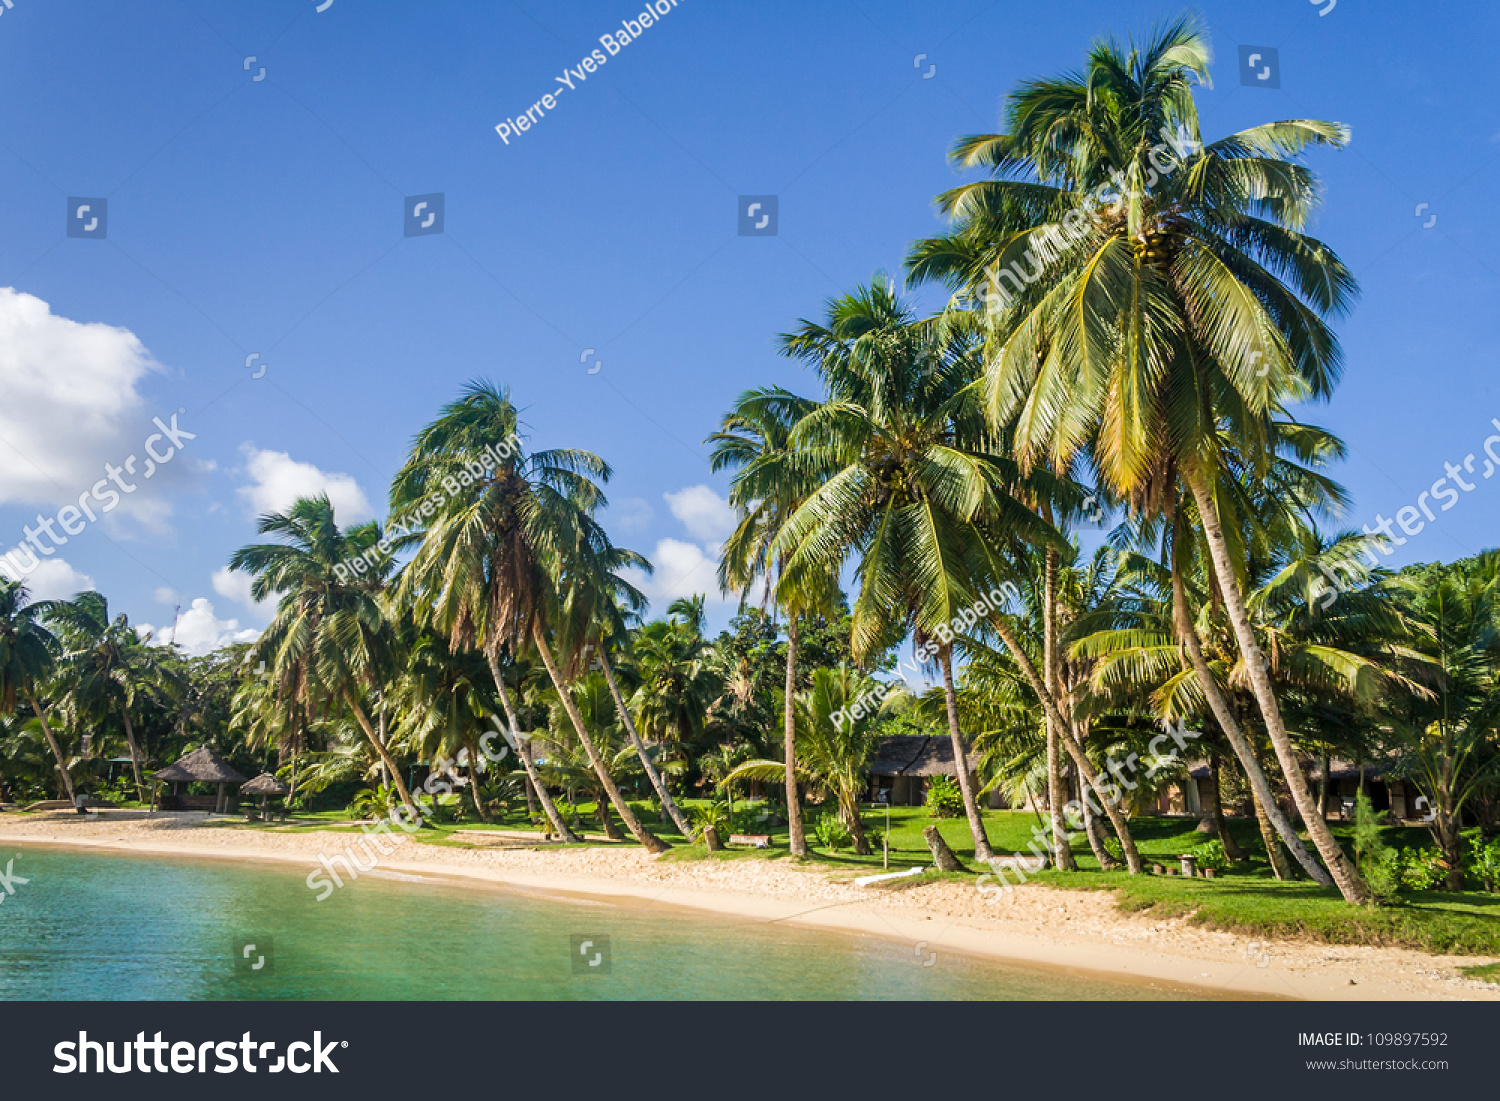 Tropical Landscape With Palm Trees On The Beach